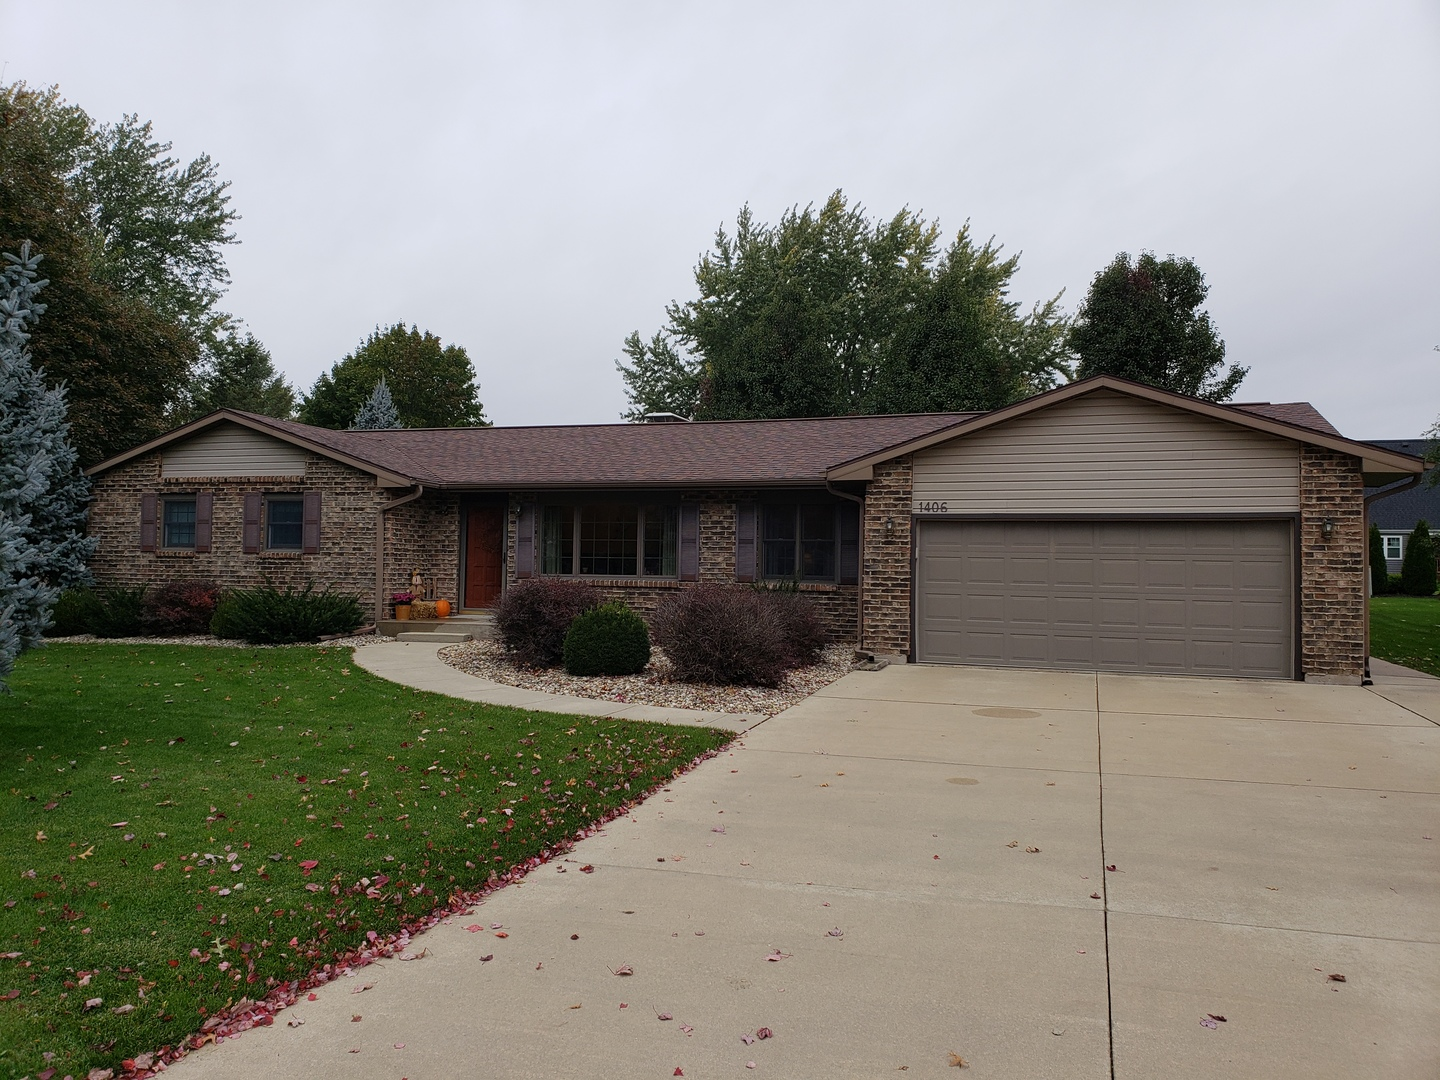 1406 36th ,Sterling, Illinois 61081